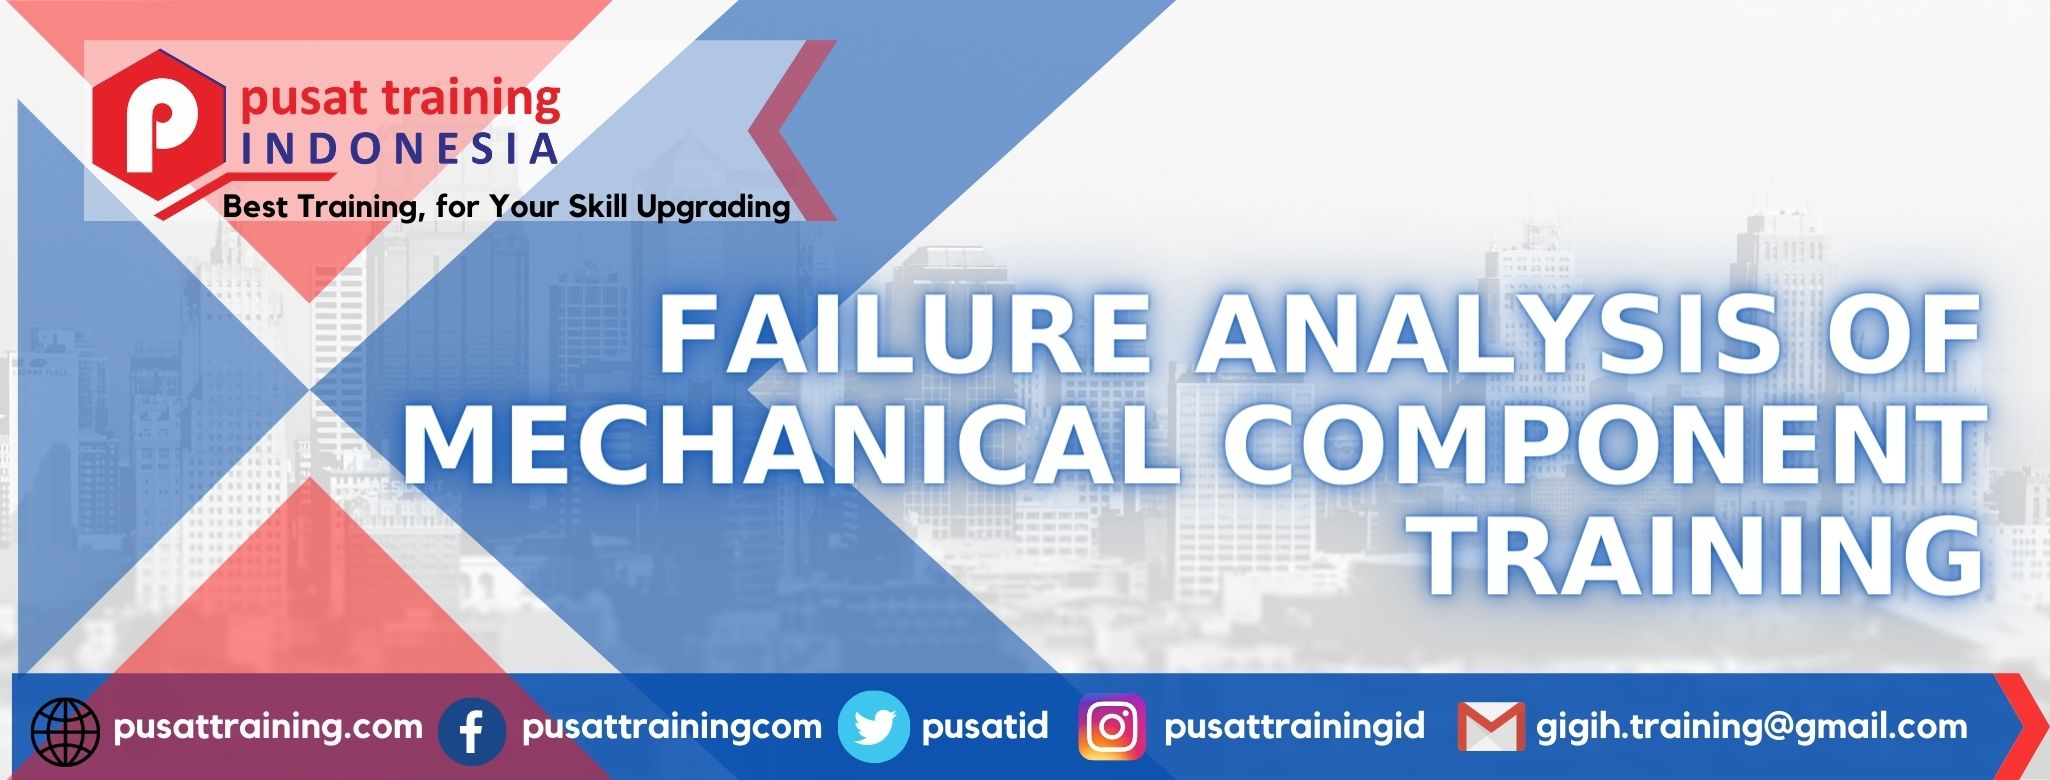 failure-analysis-of-mechanical-component-training